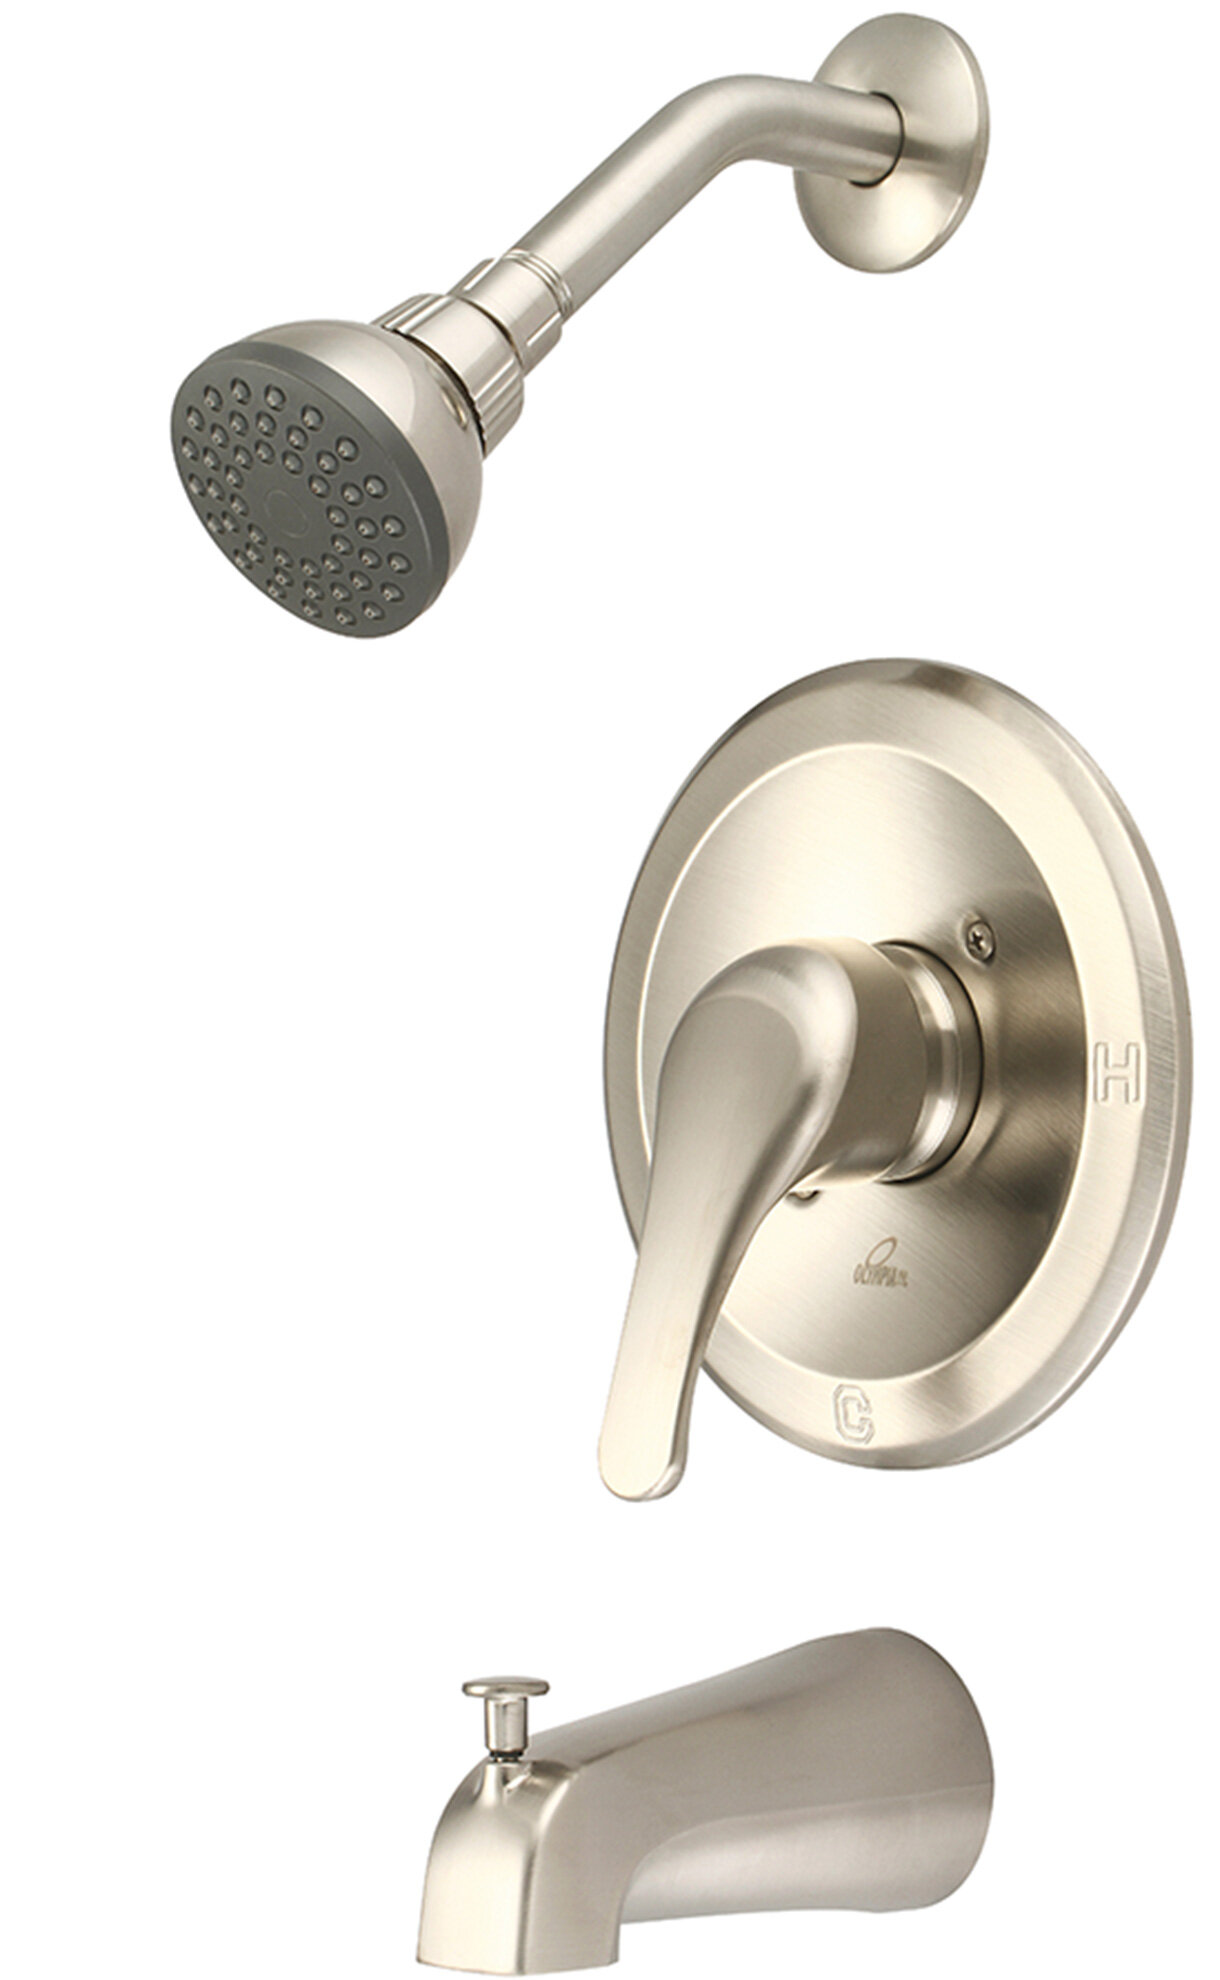 Olympia Faucets Elite Single Handle Volume Control Tub And Shower Faucet Wayfair